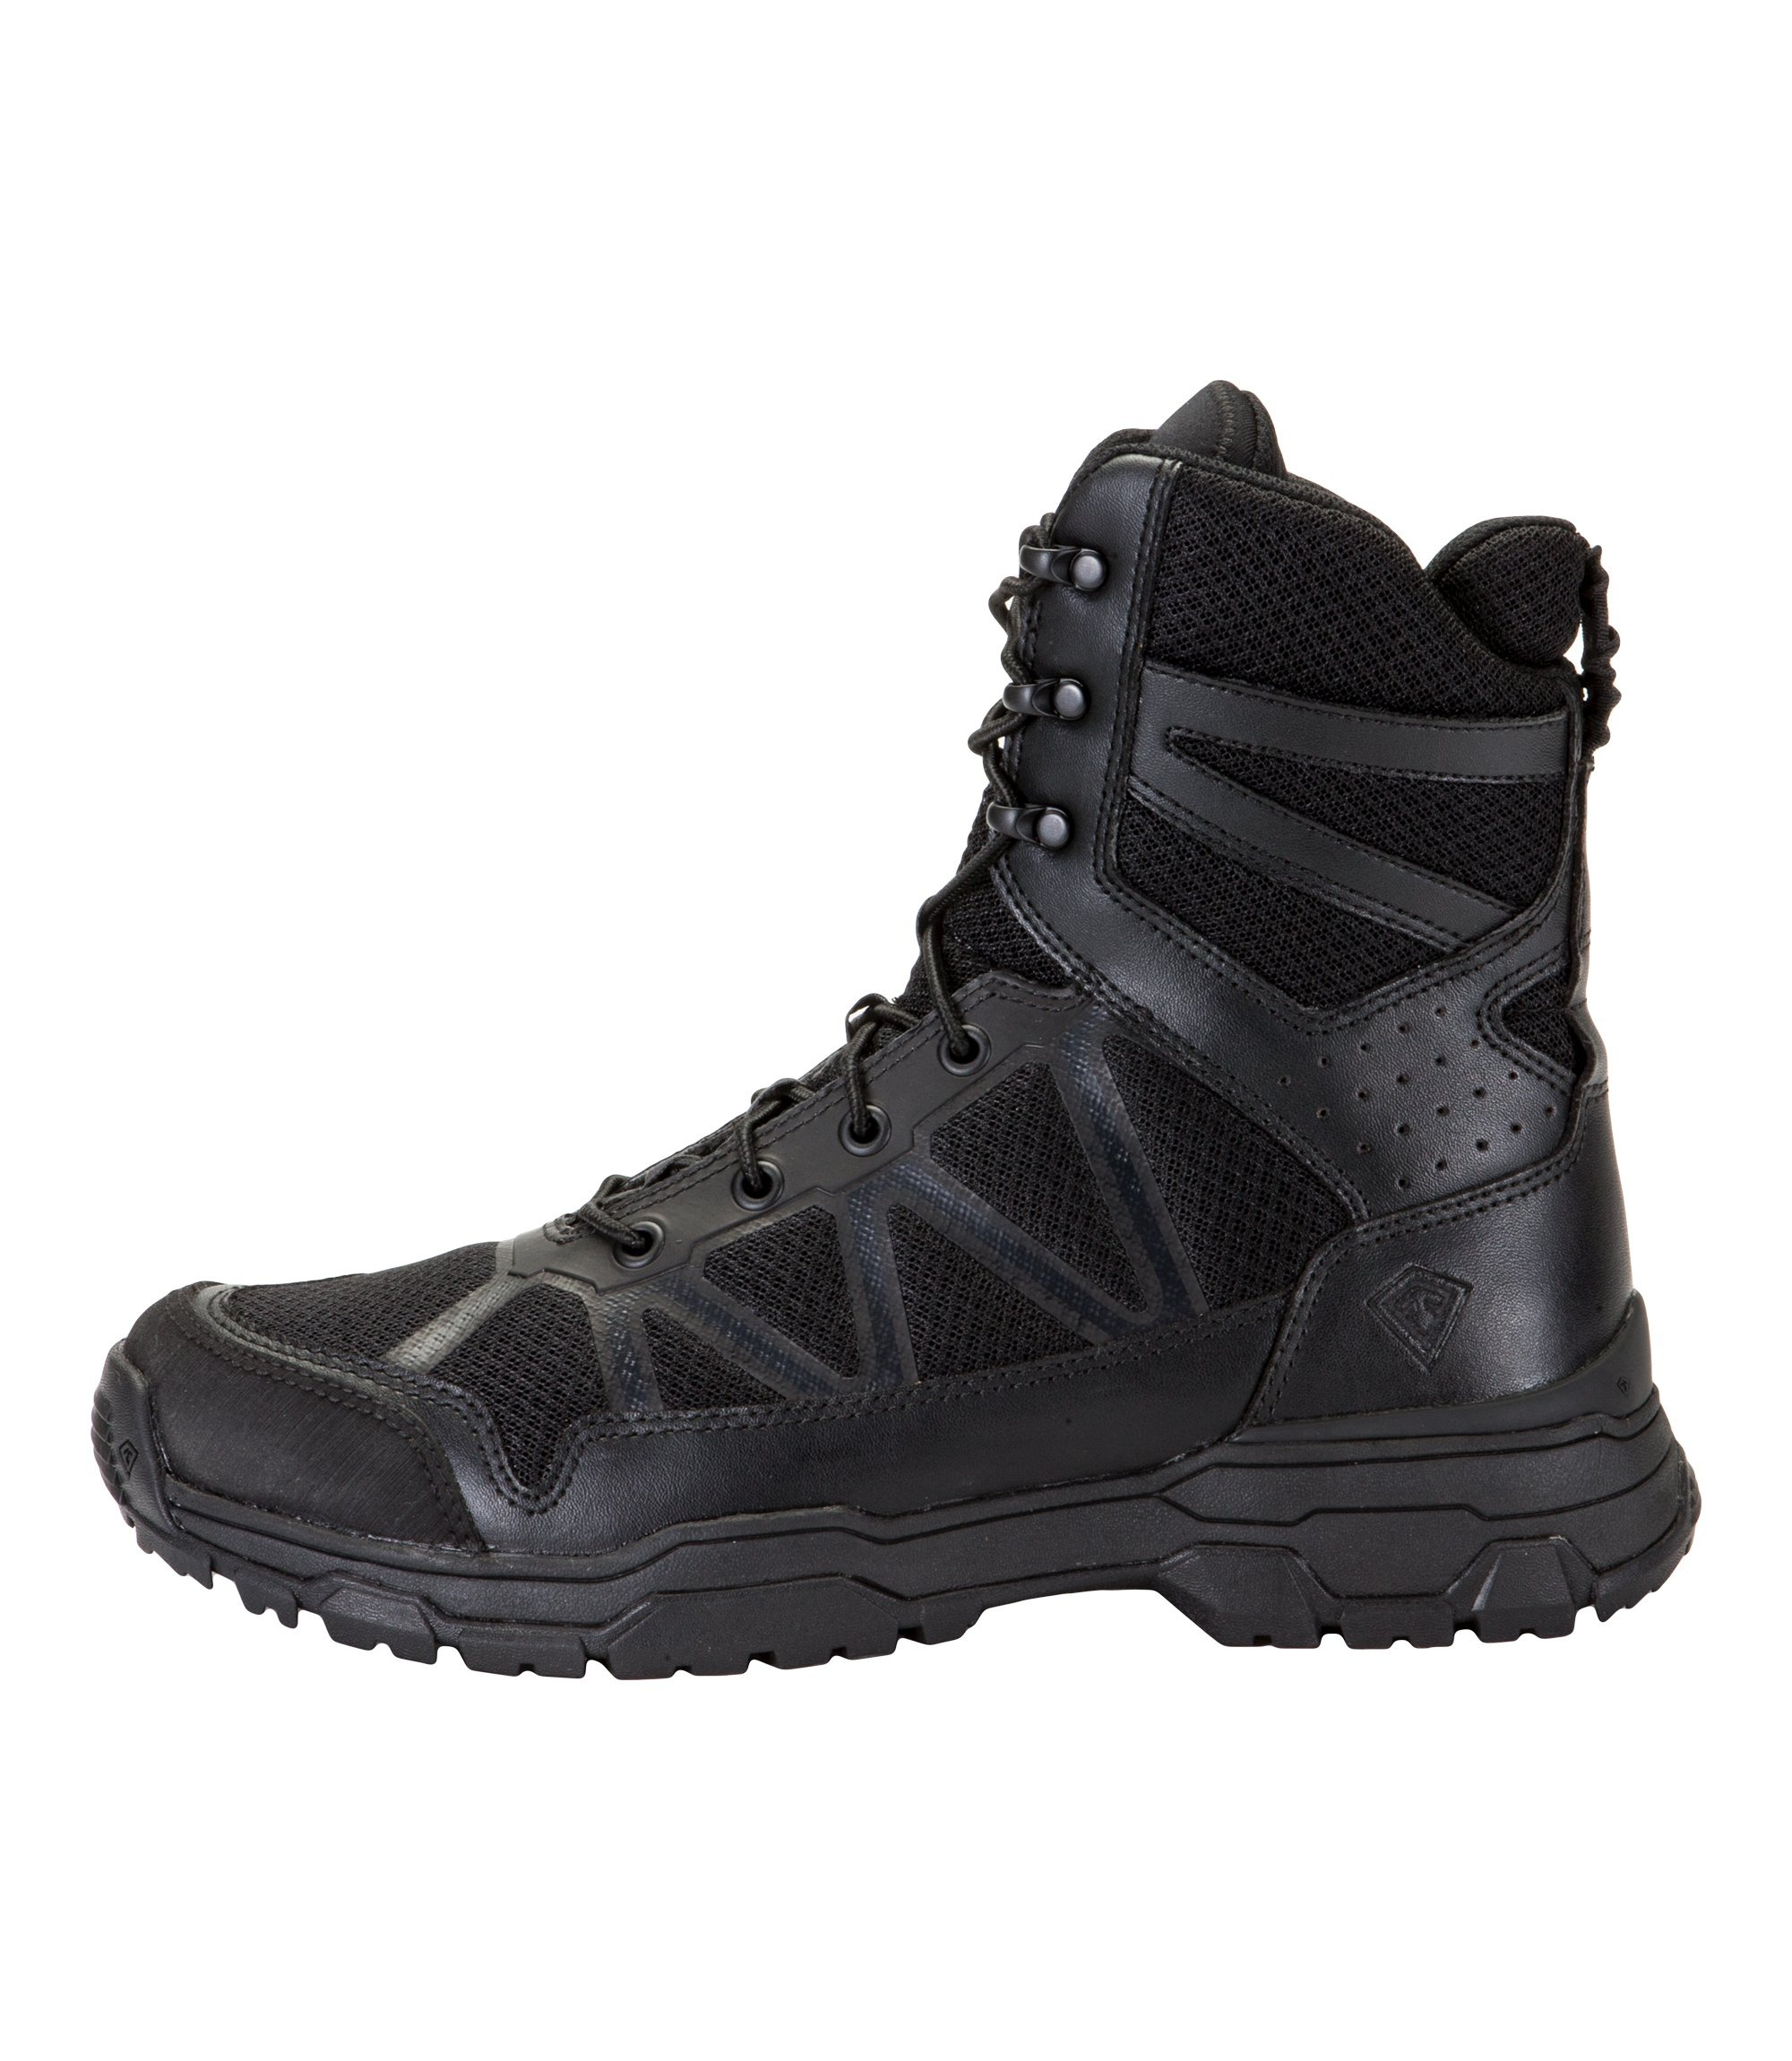 """Image of Buty first tactical m's 7"""" operator boot black 165010 - kolor black (019), rozmiar (a) 41,5 (u1t/165010 019 7,5 - 41,5)"""